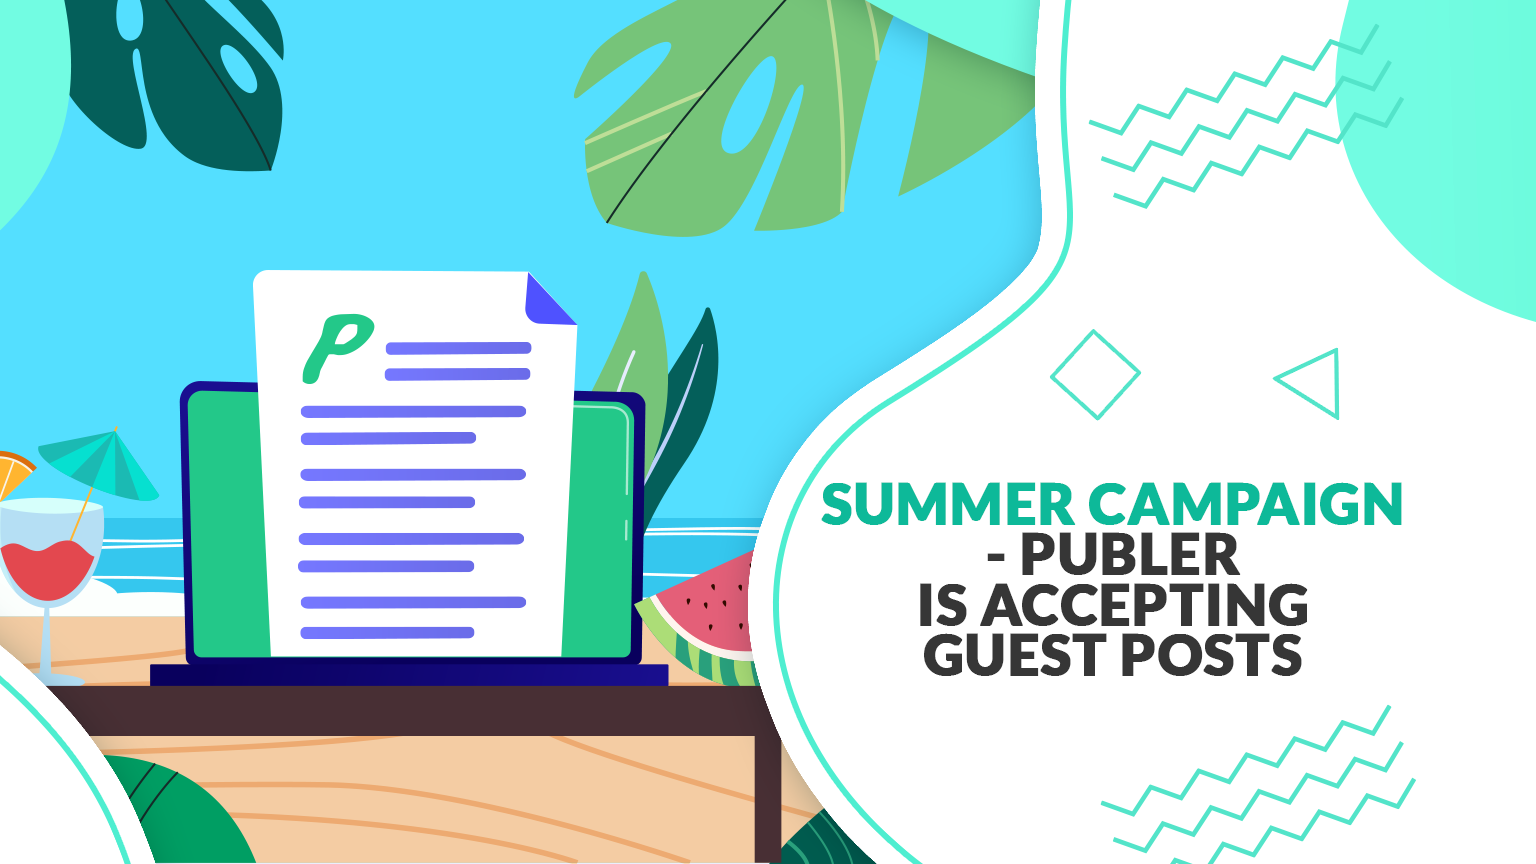 Summer Campaign: Publer is accepting Guest Posts